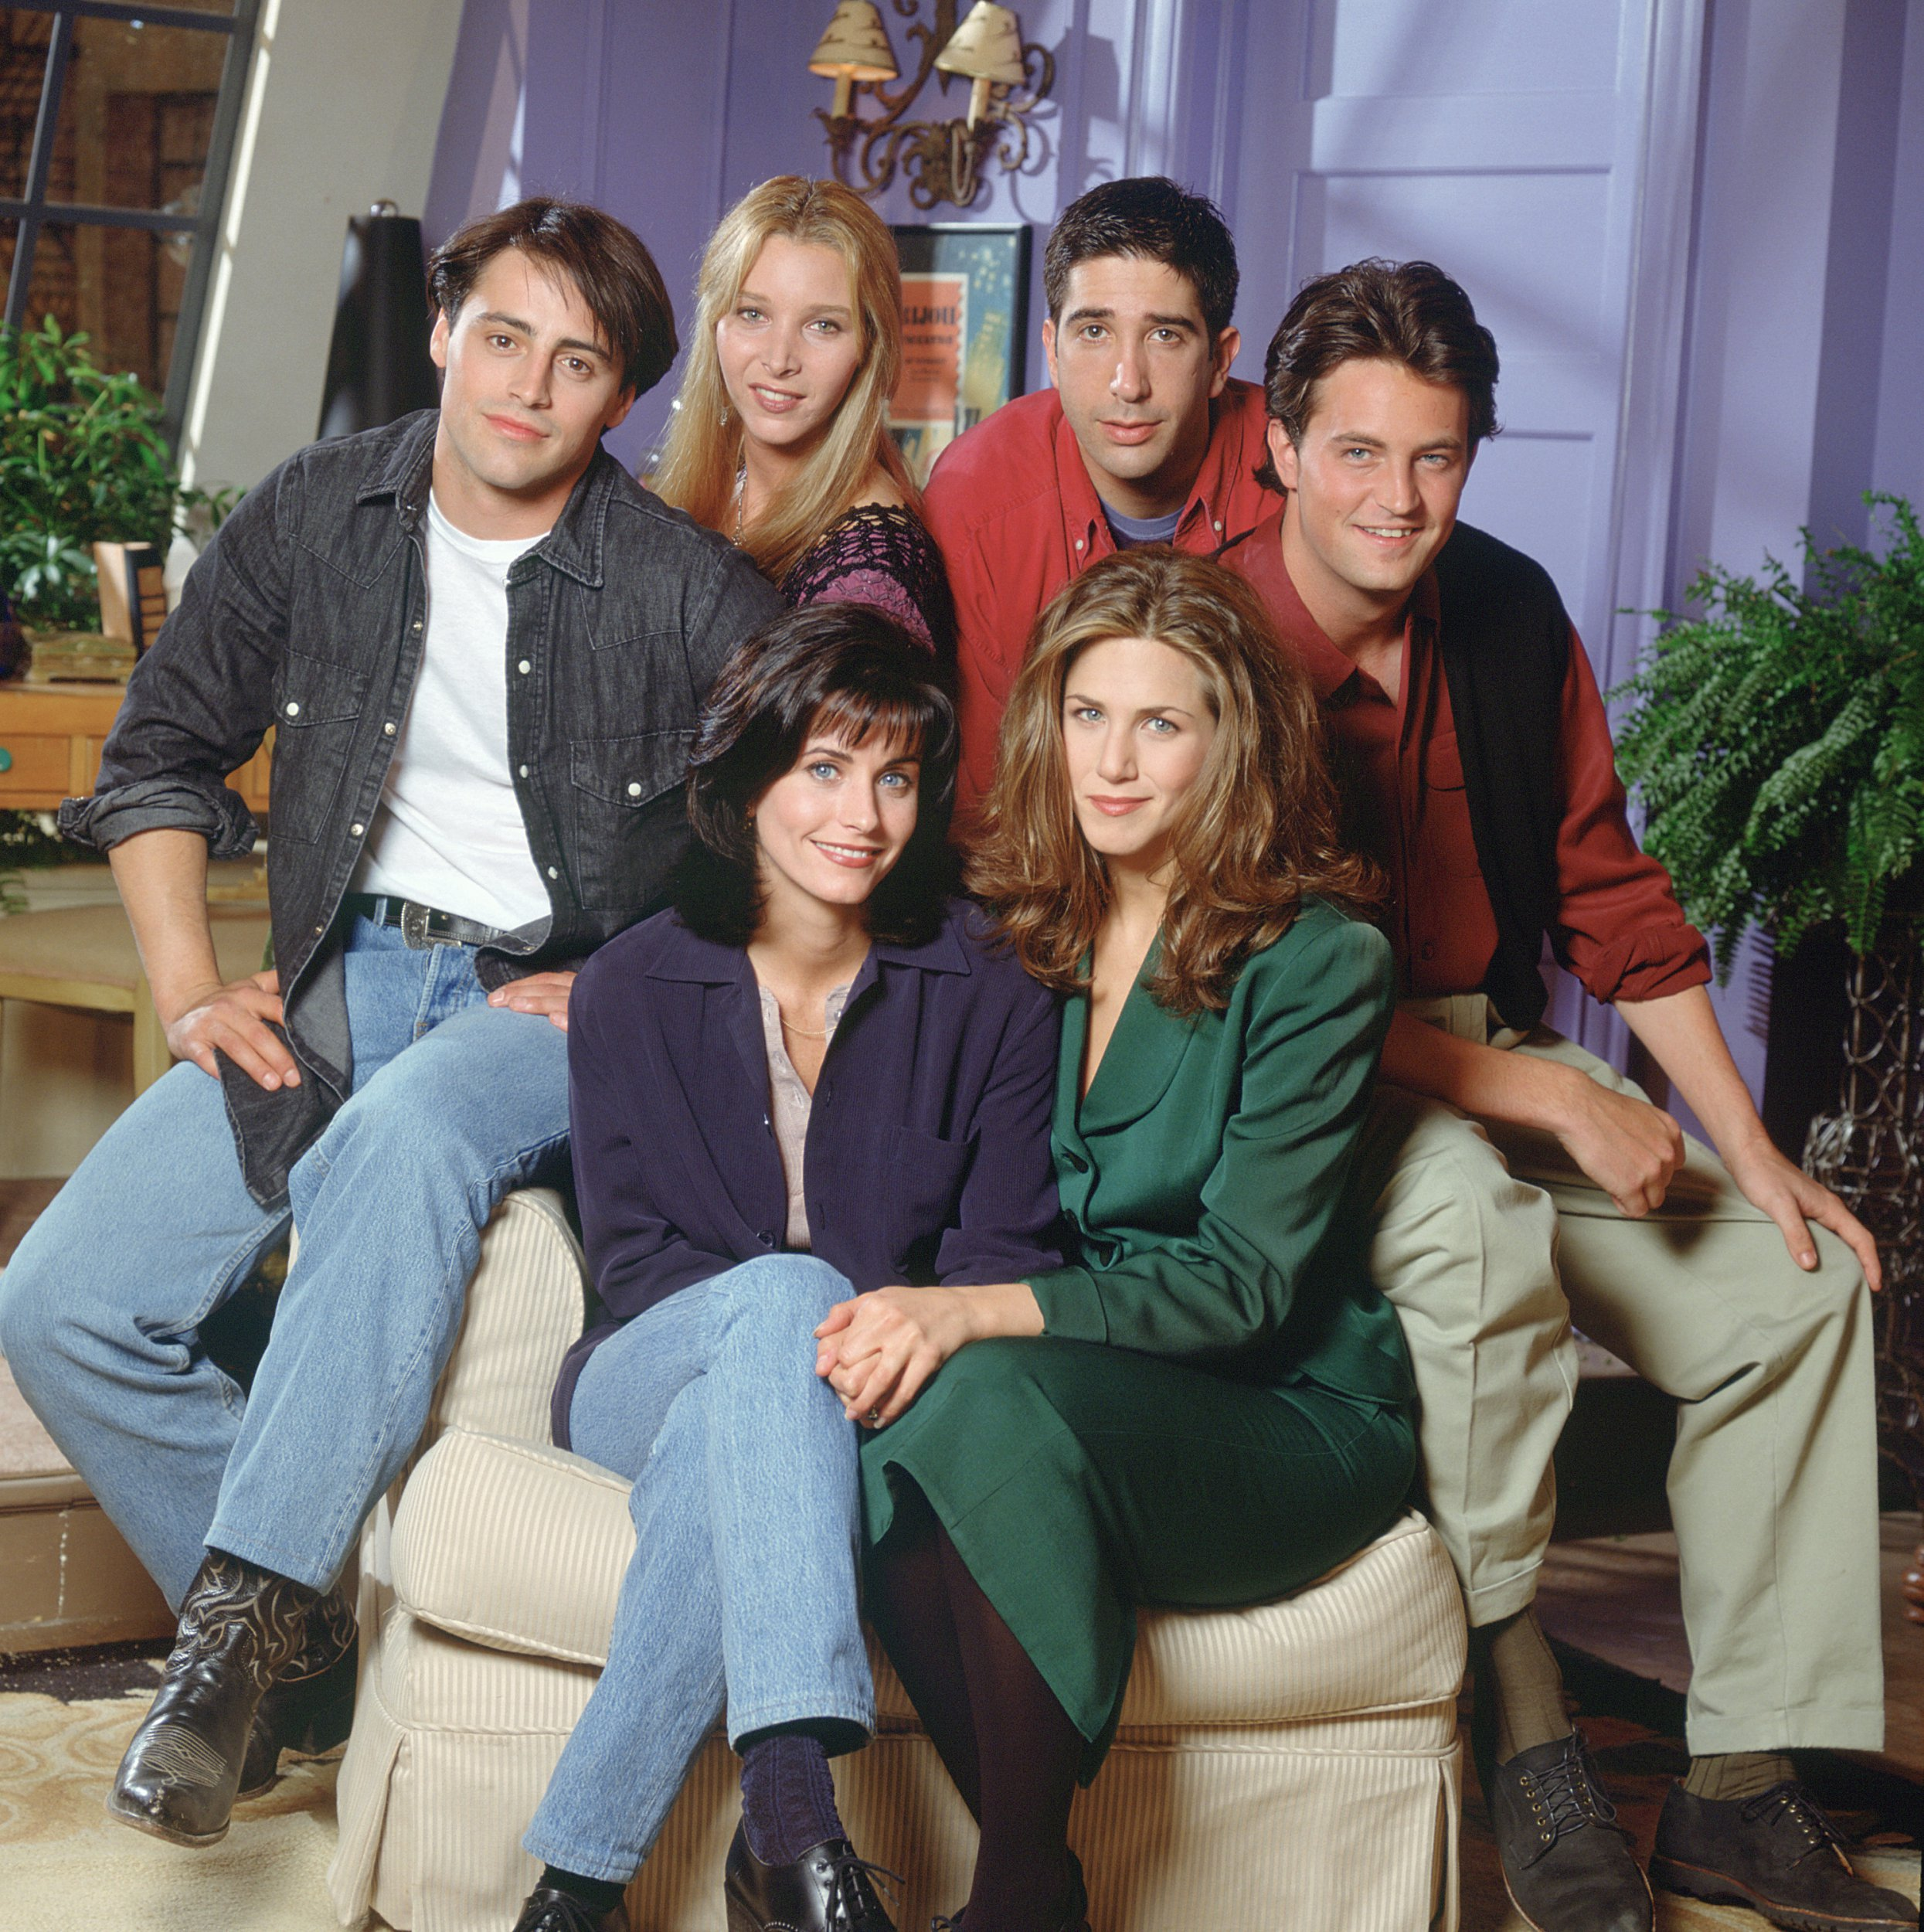 FRIENDS -- Pictured: (clockwise from bottom left) Courteney Cox Arquette as Monica Geller, Matt LeBlanc as Joey Tribbiani, Lisa Kudrow as Phoebe Buffay, David Schwimmer as Ross Geller, Matthew Perry as Chandler Bing, Jennifer Aniston as Rachel Green -- (Photo by Reisig & Taylor/NBC/NBCU Photo Bank via Getty Images)